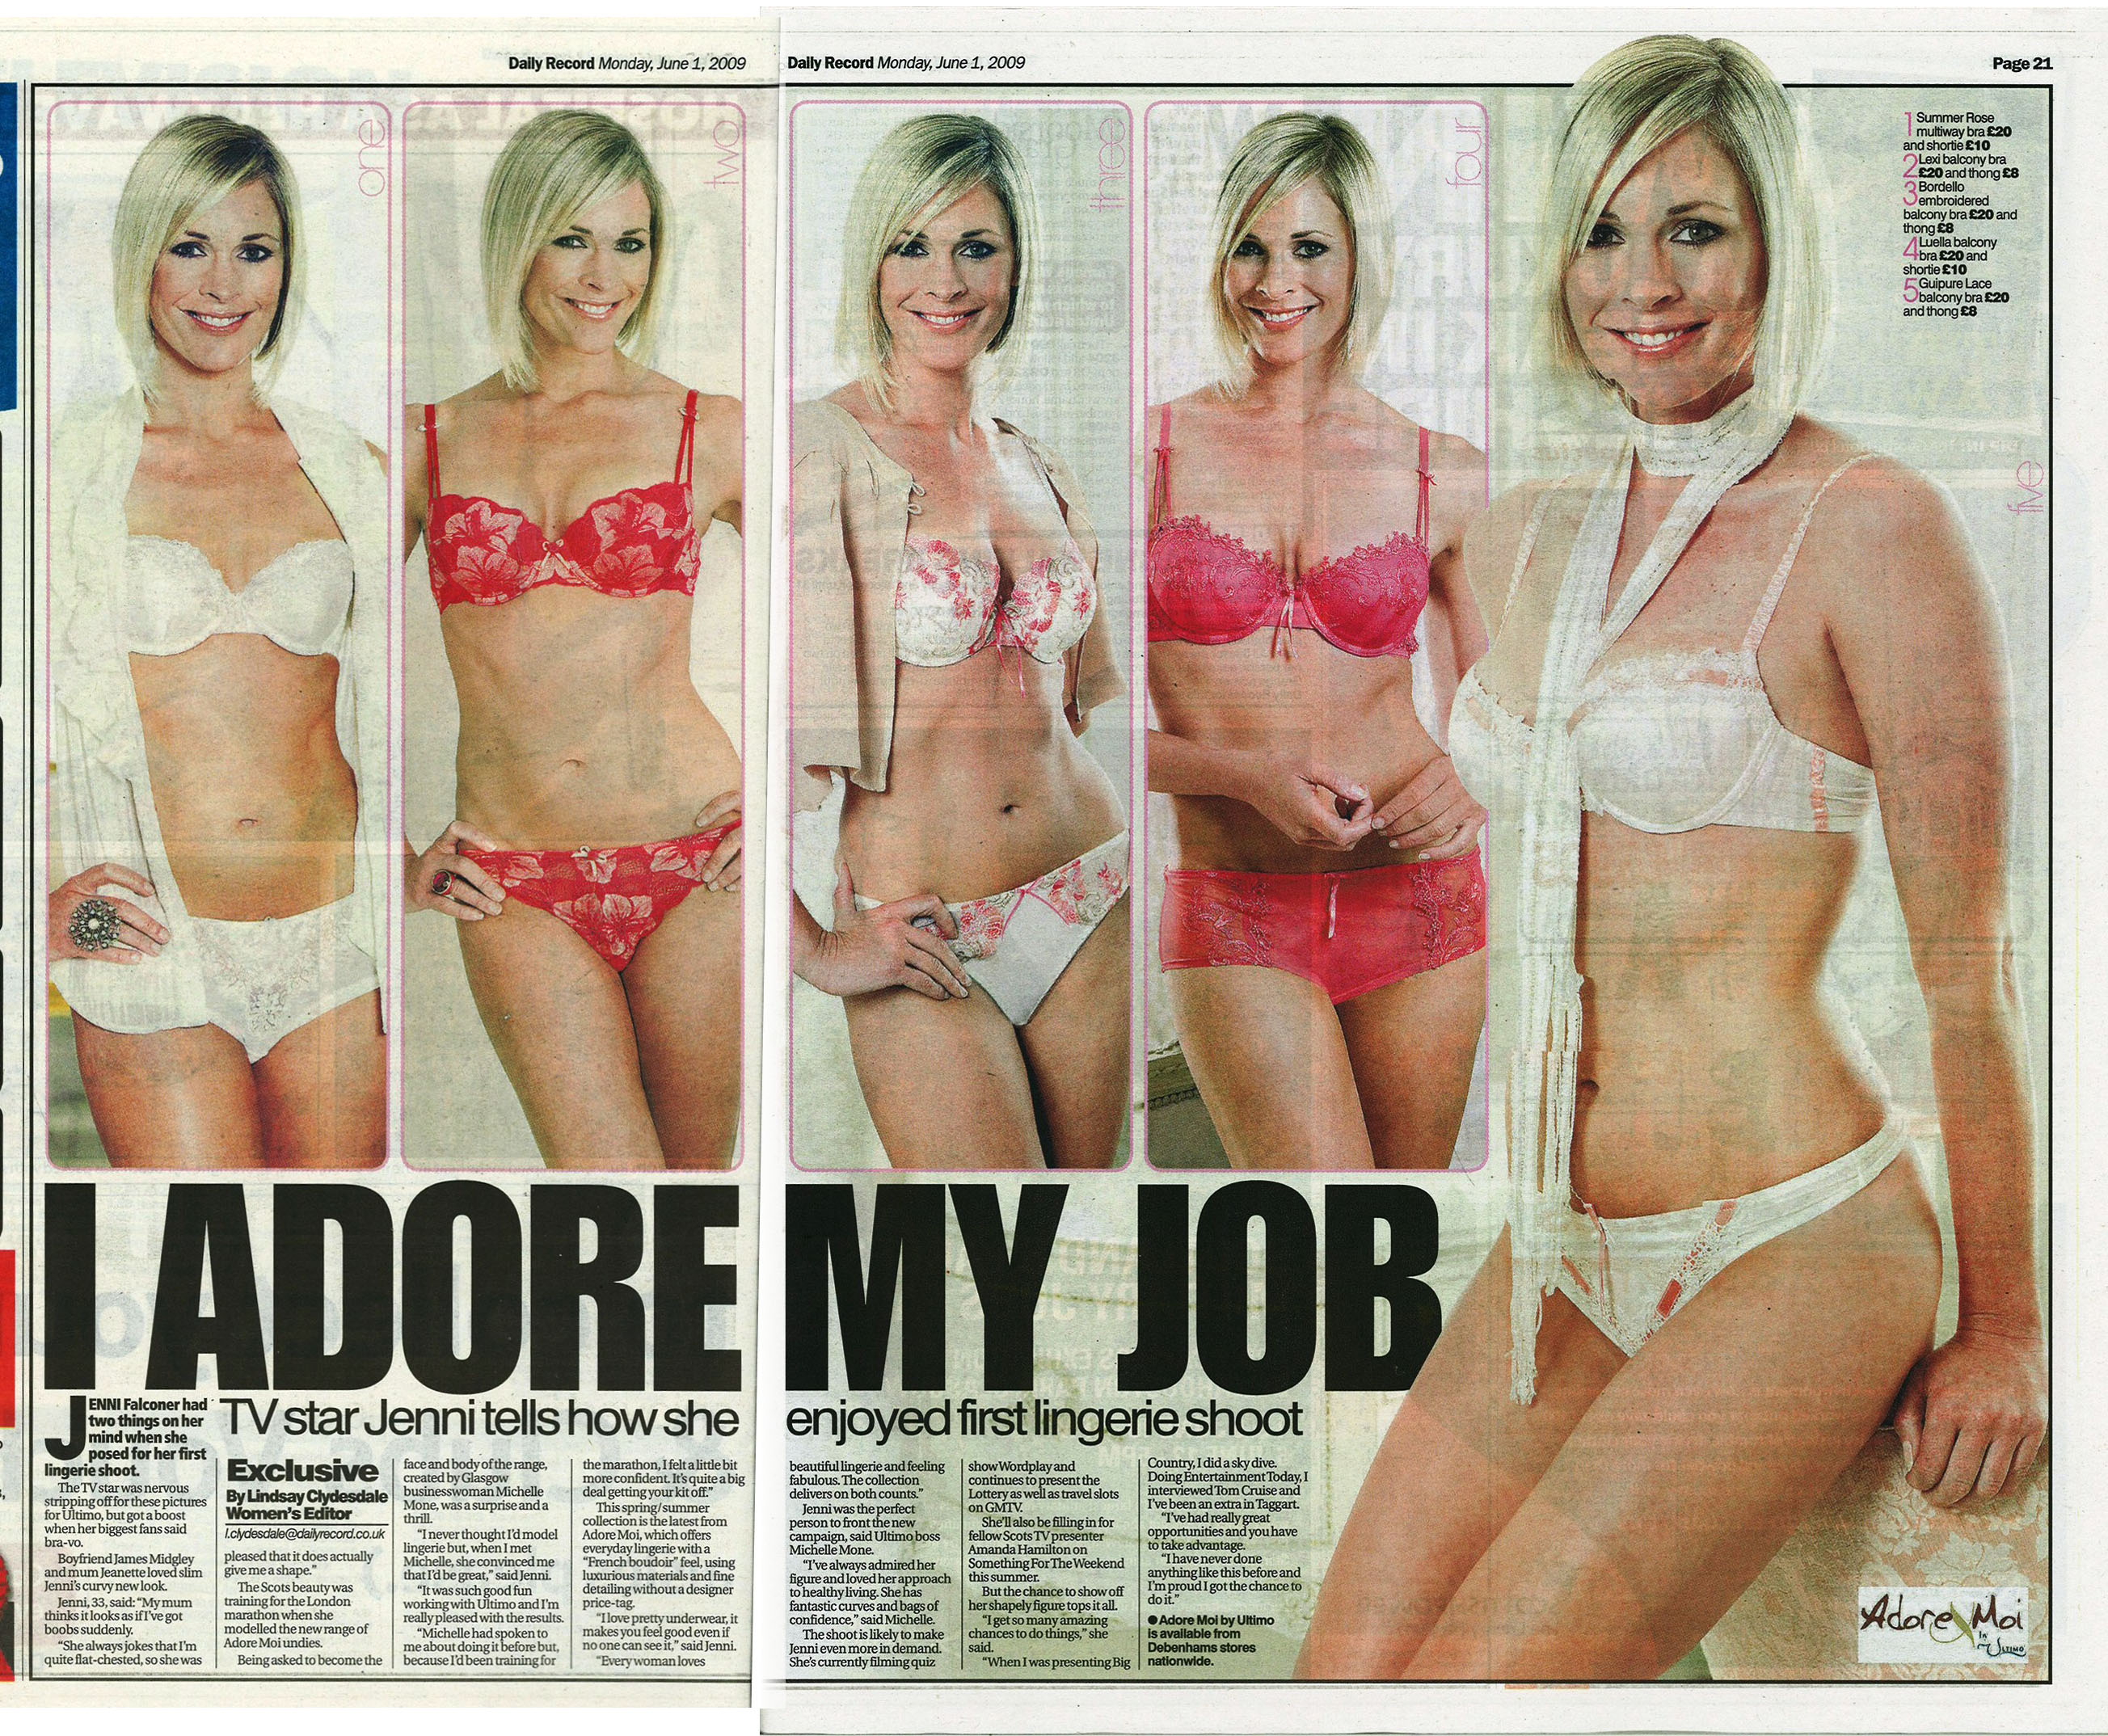 Jenni-Adore-Moi_Daily-Record-June1st09